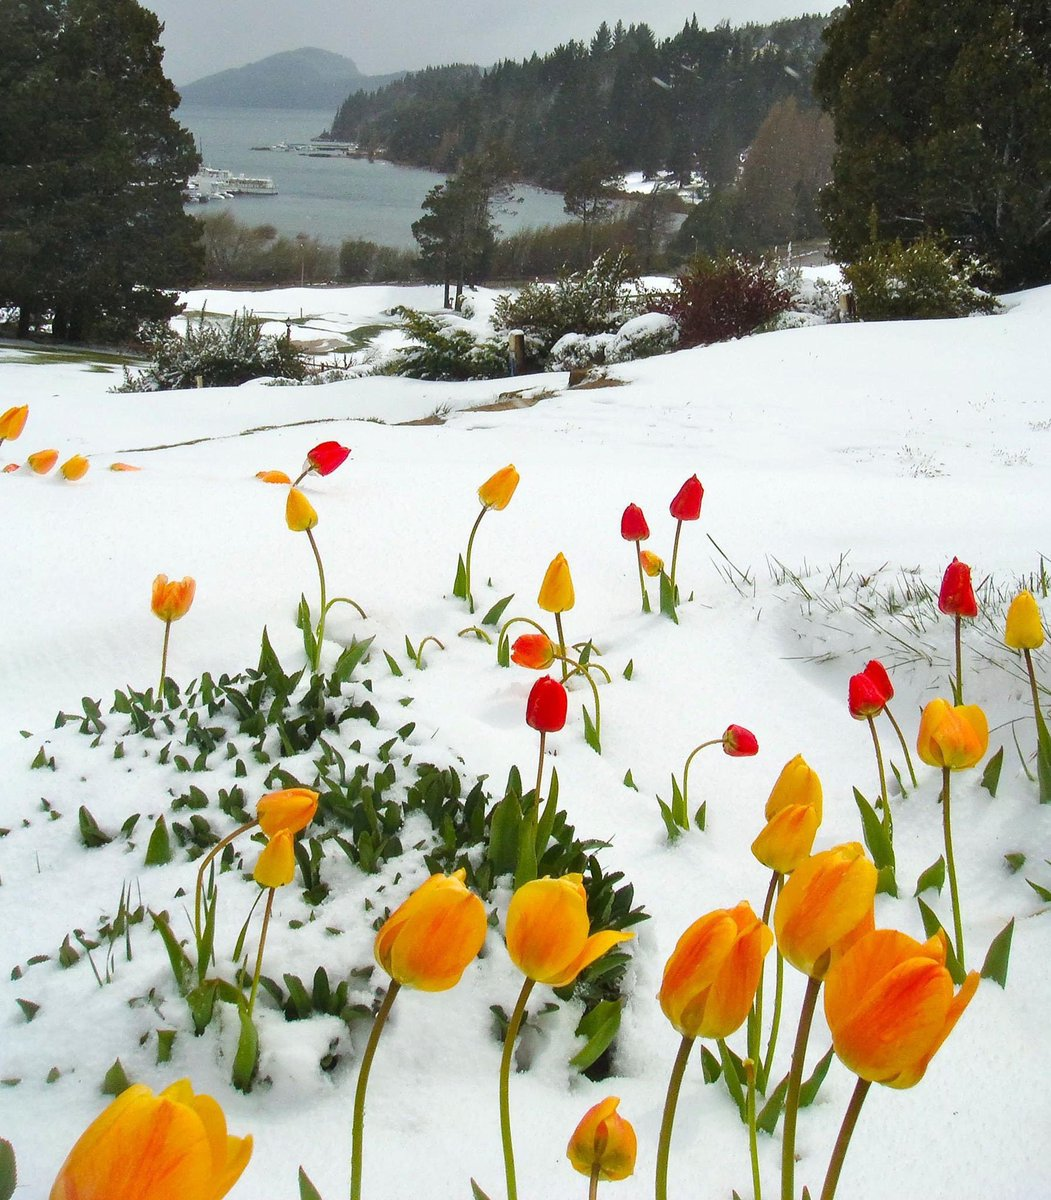 also here everyone. Tulips in snow to cheer you up